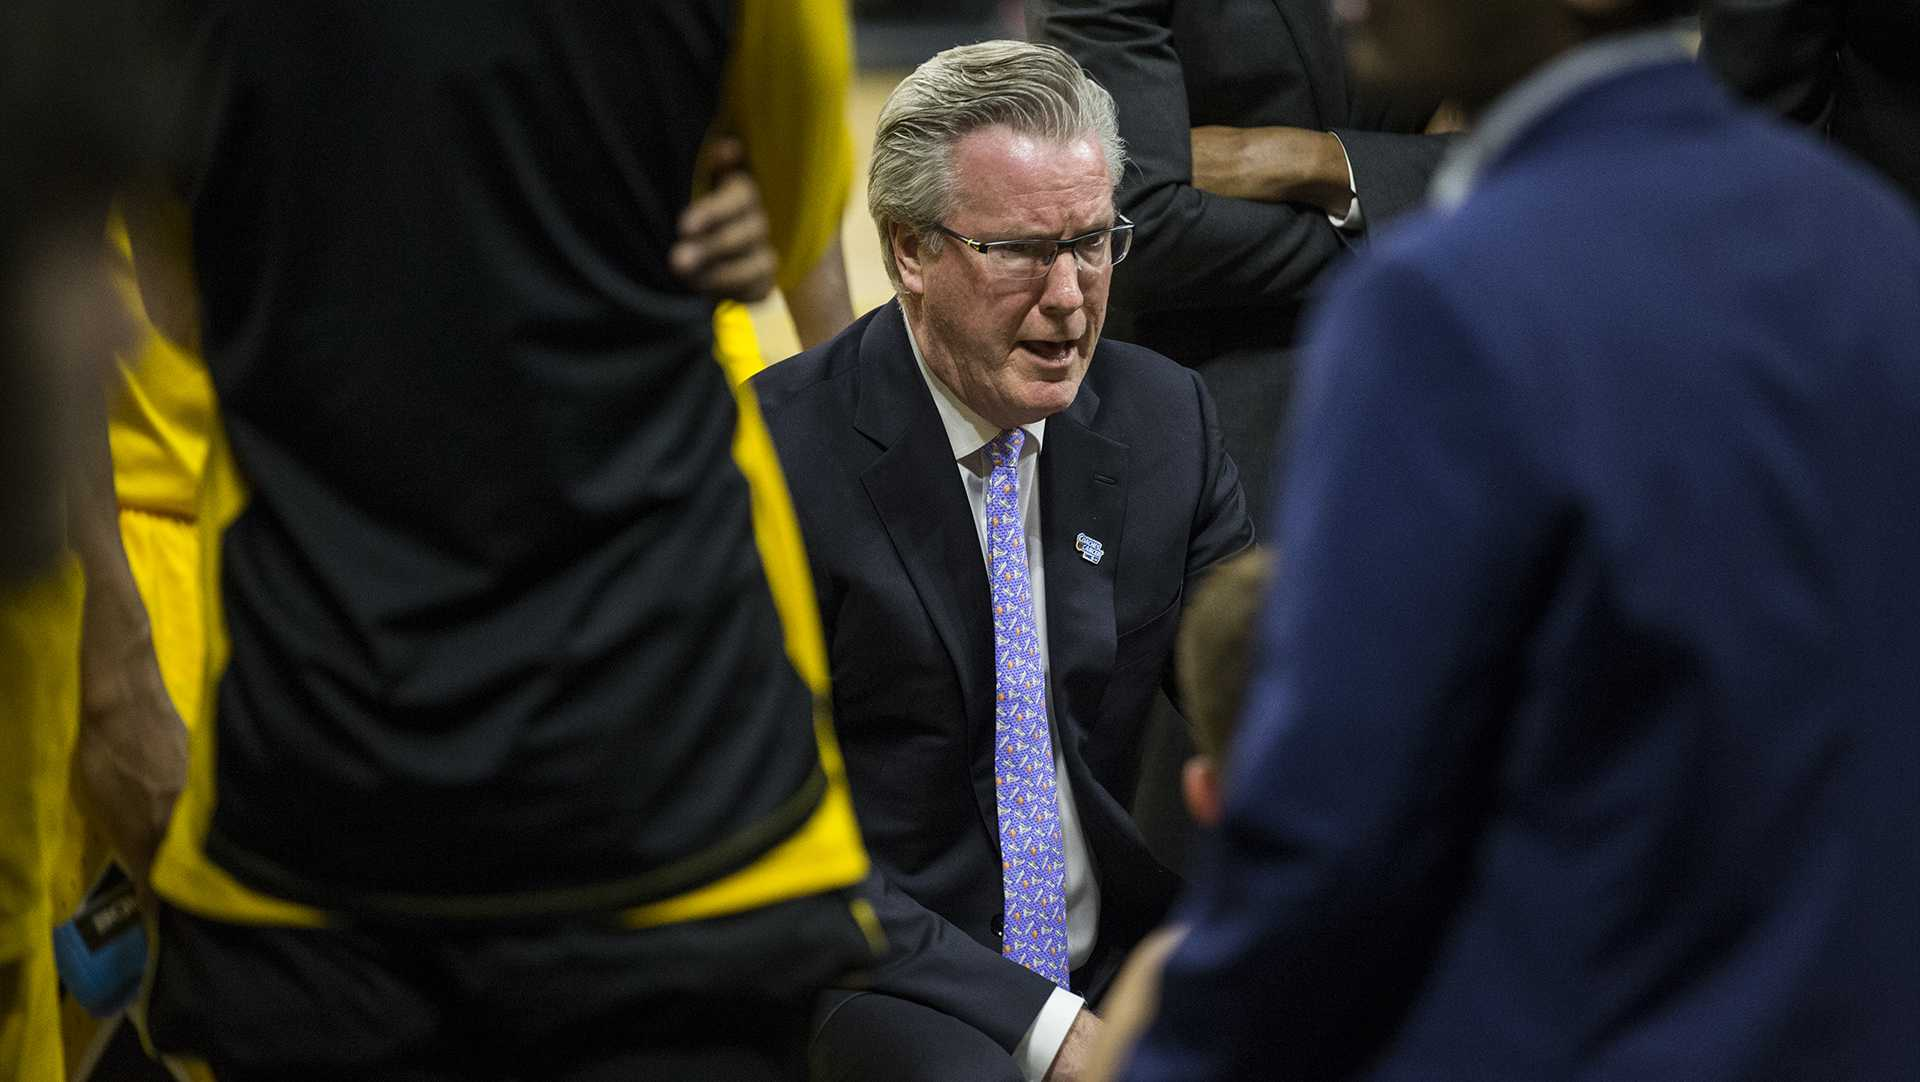 Iowa head coach Fran McCaffery speaks to his players during a timeout in the NCAA men's basketball game between Iowa and Wisconsin at Carver-Hawkeye Arena on Tuesday, Jan. 23, 2018. The Hawkeyes are going into the game with a conference record of 1-7. Iowa went on to defeat Wisconsin 85-67. (Ben Allan Smith/The Daily Iowan)